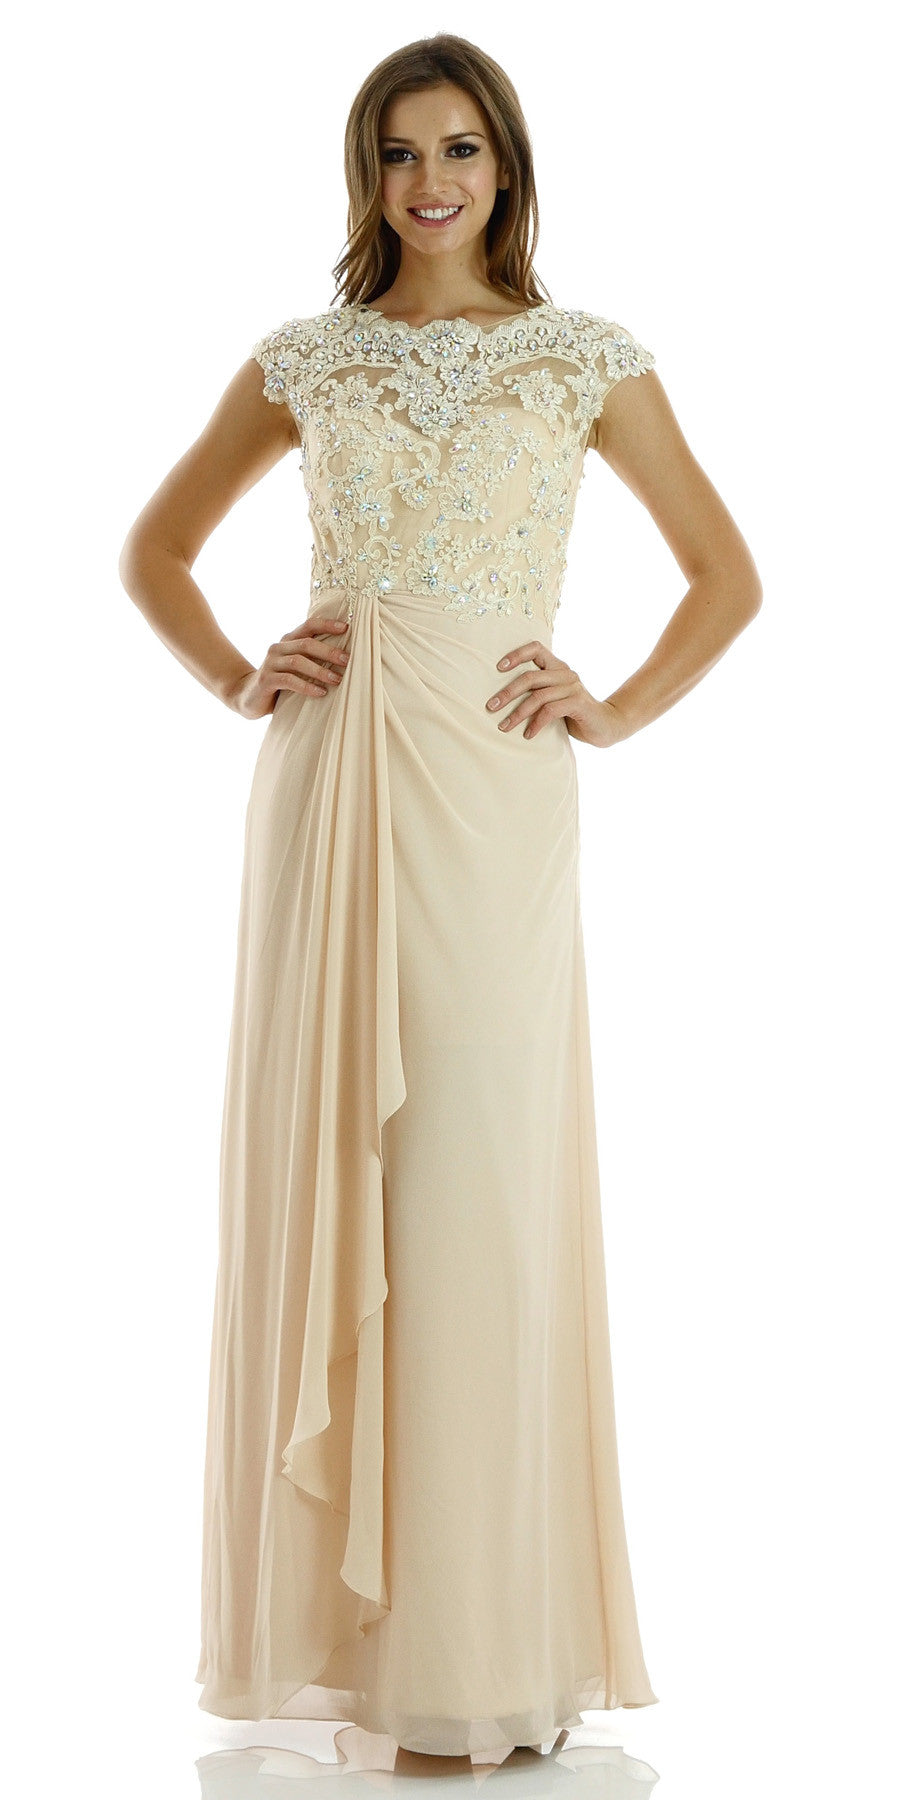 Cap-sleeved Long Chiffon Mermaid Gown with Lace Bodice